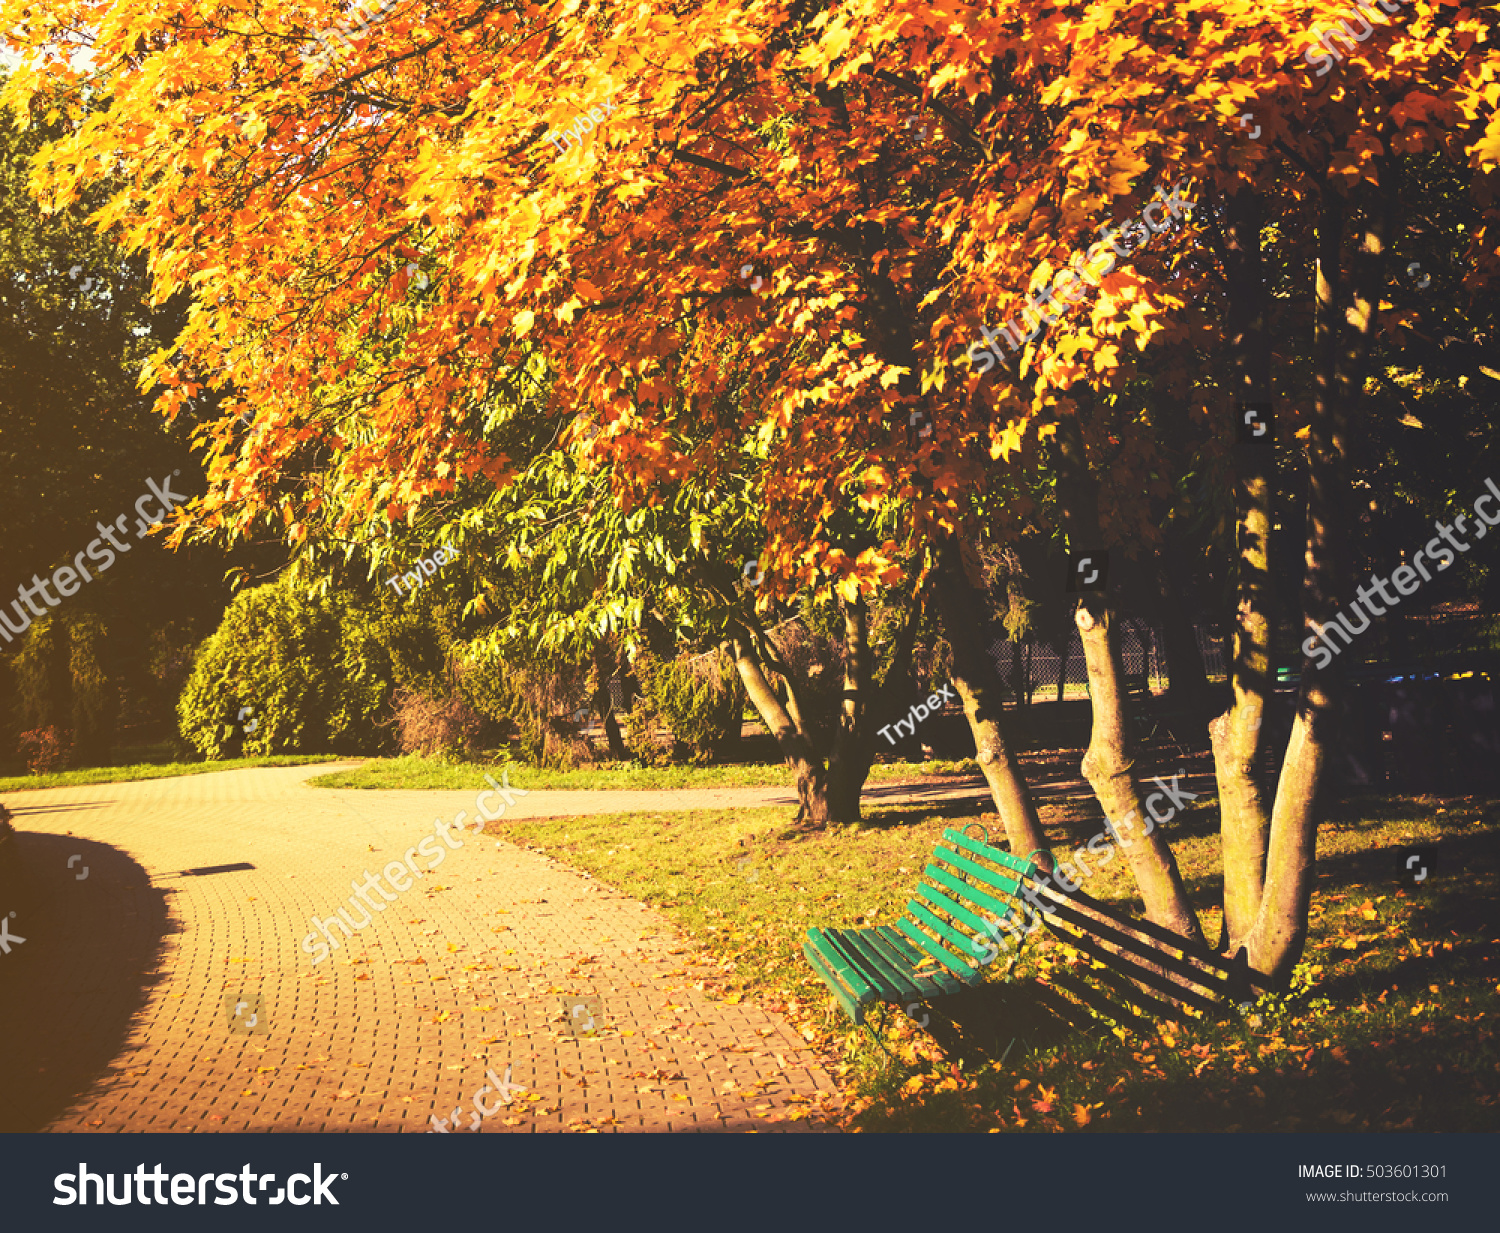 beautiful colorful autumn leaves park stock photo 503601301